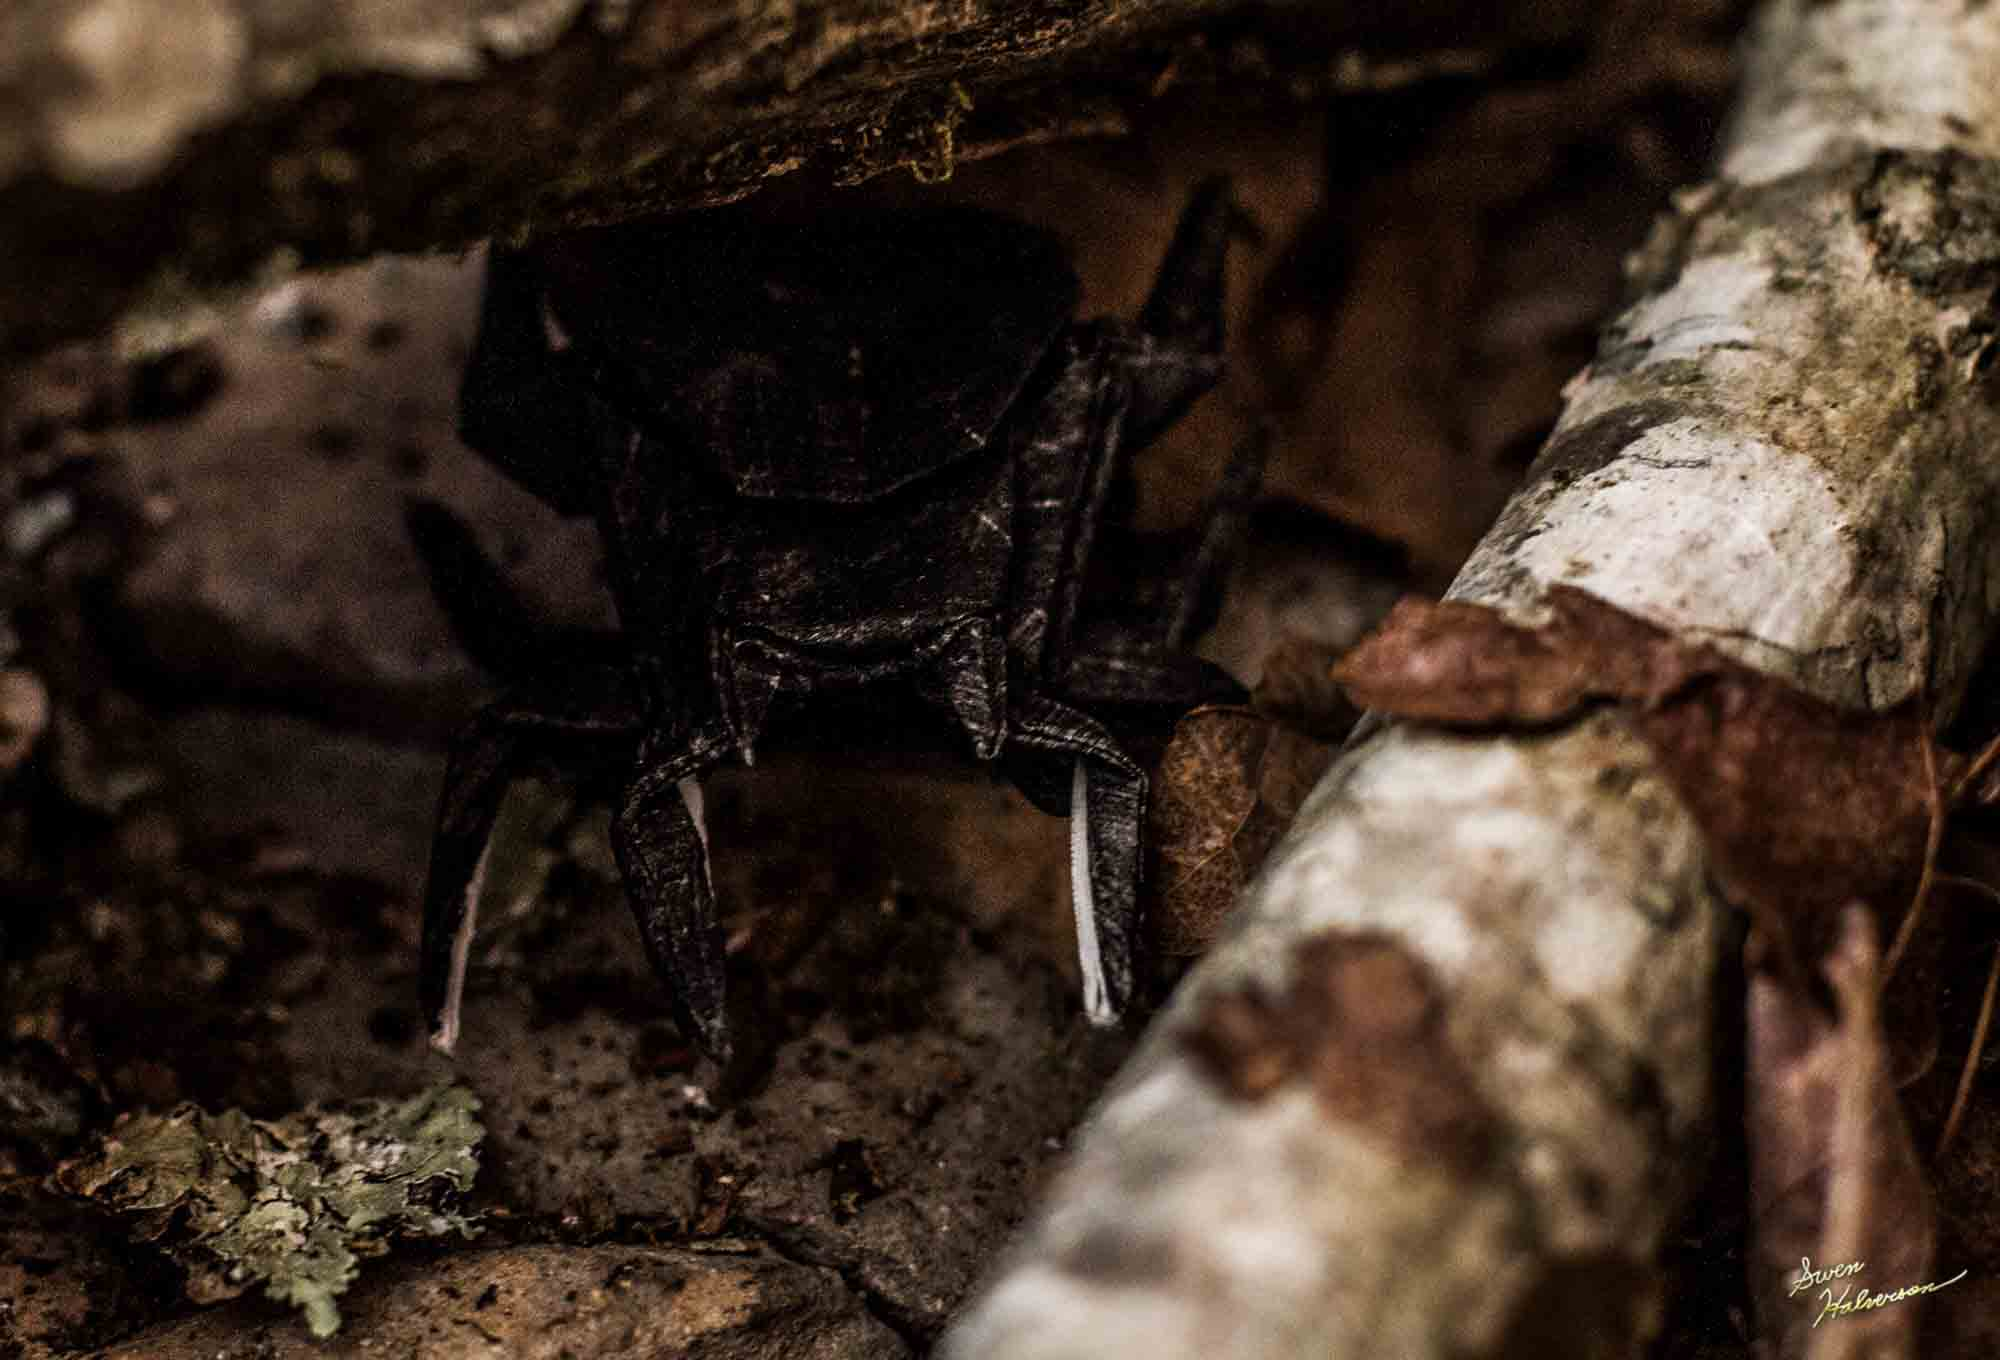 Theme: Origami | Title: Spider Lurking In The Shadows